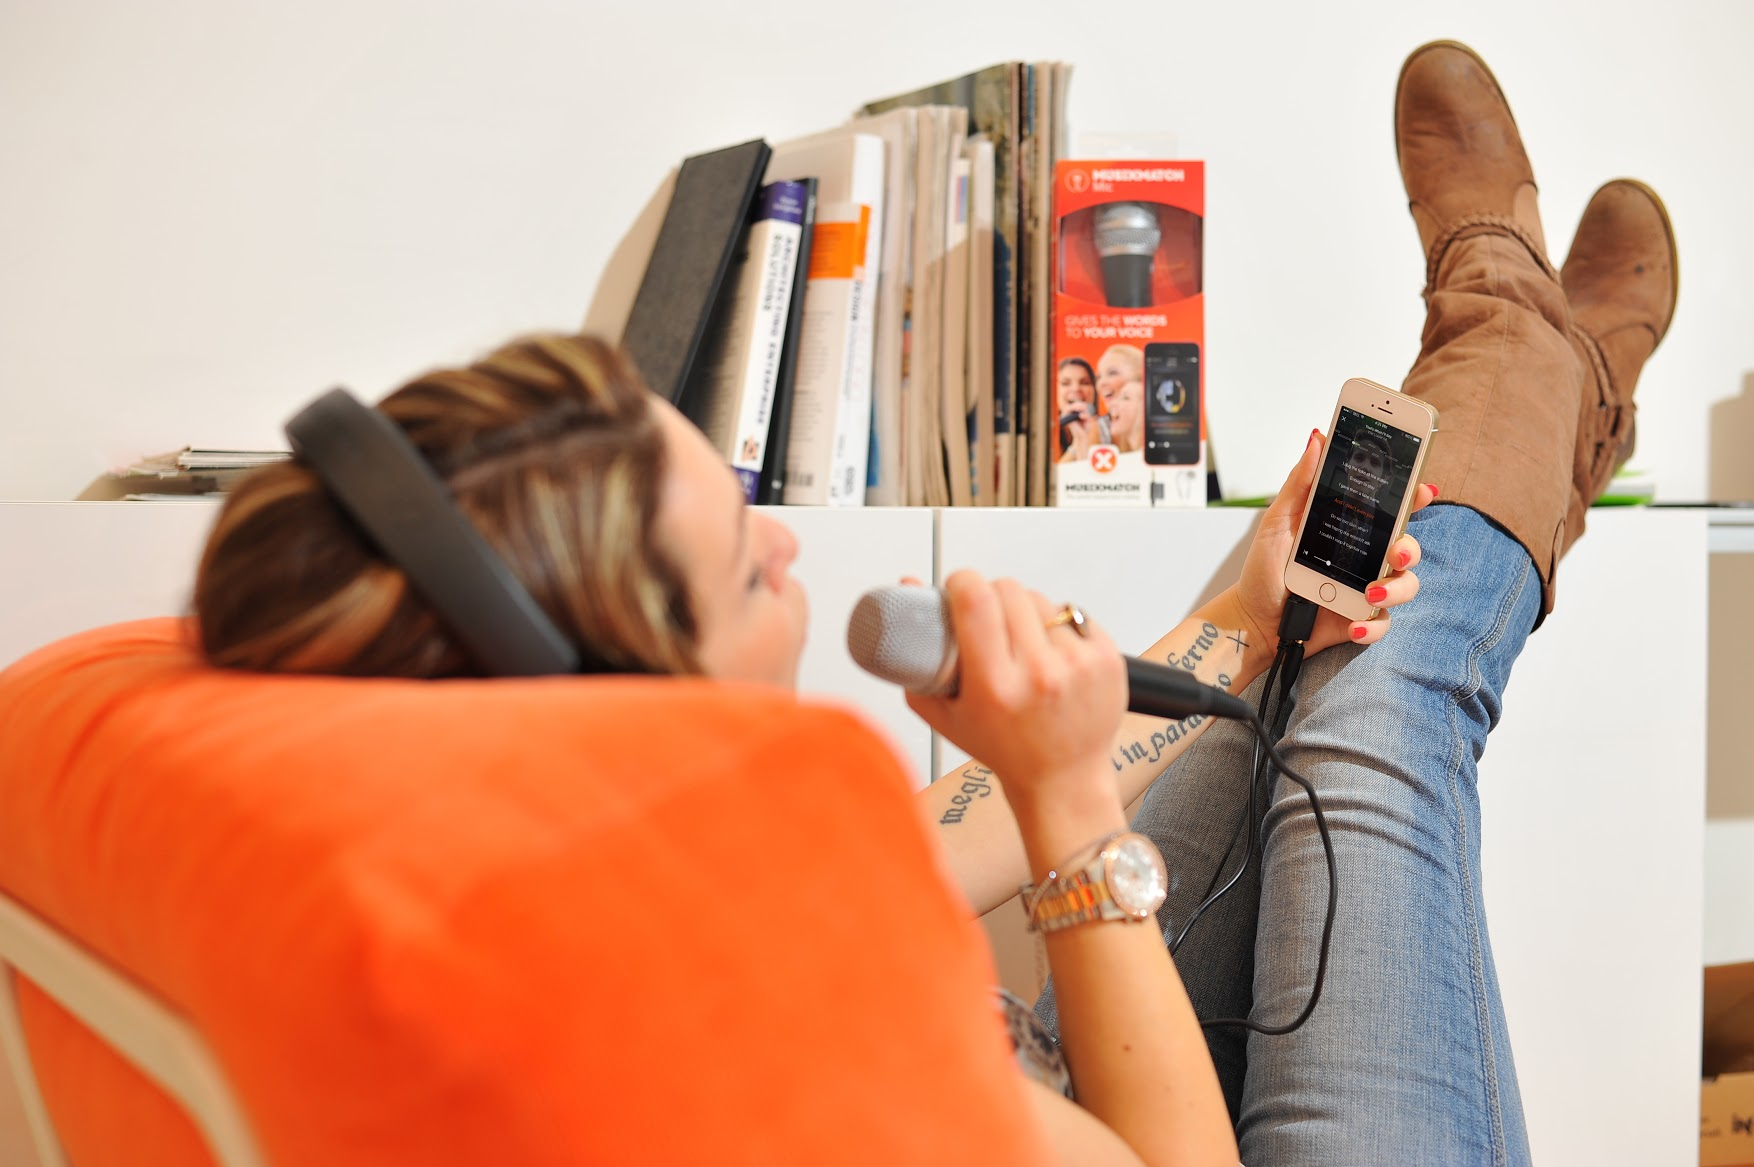 Like singing along to your favorite music? MusiXmatch's new mic for its iOS app has you covered